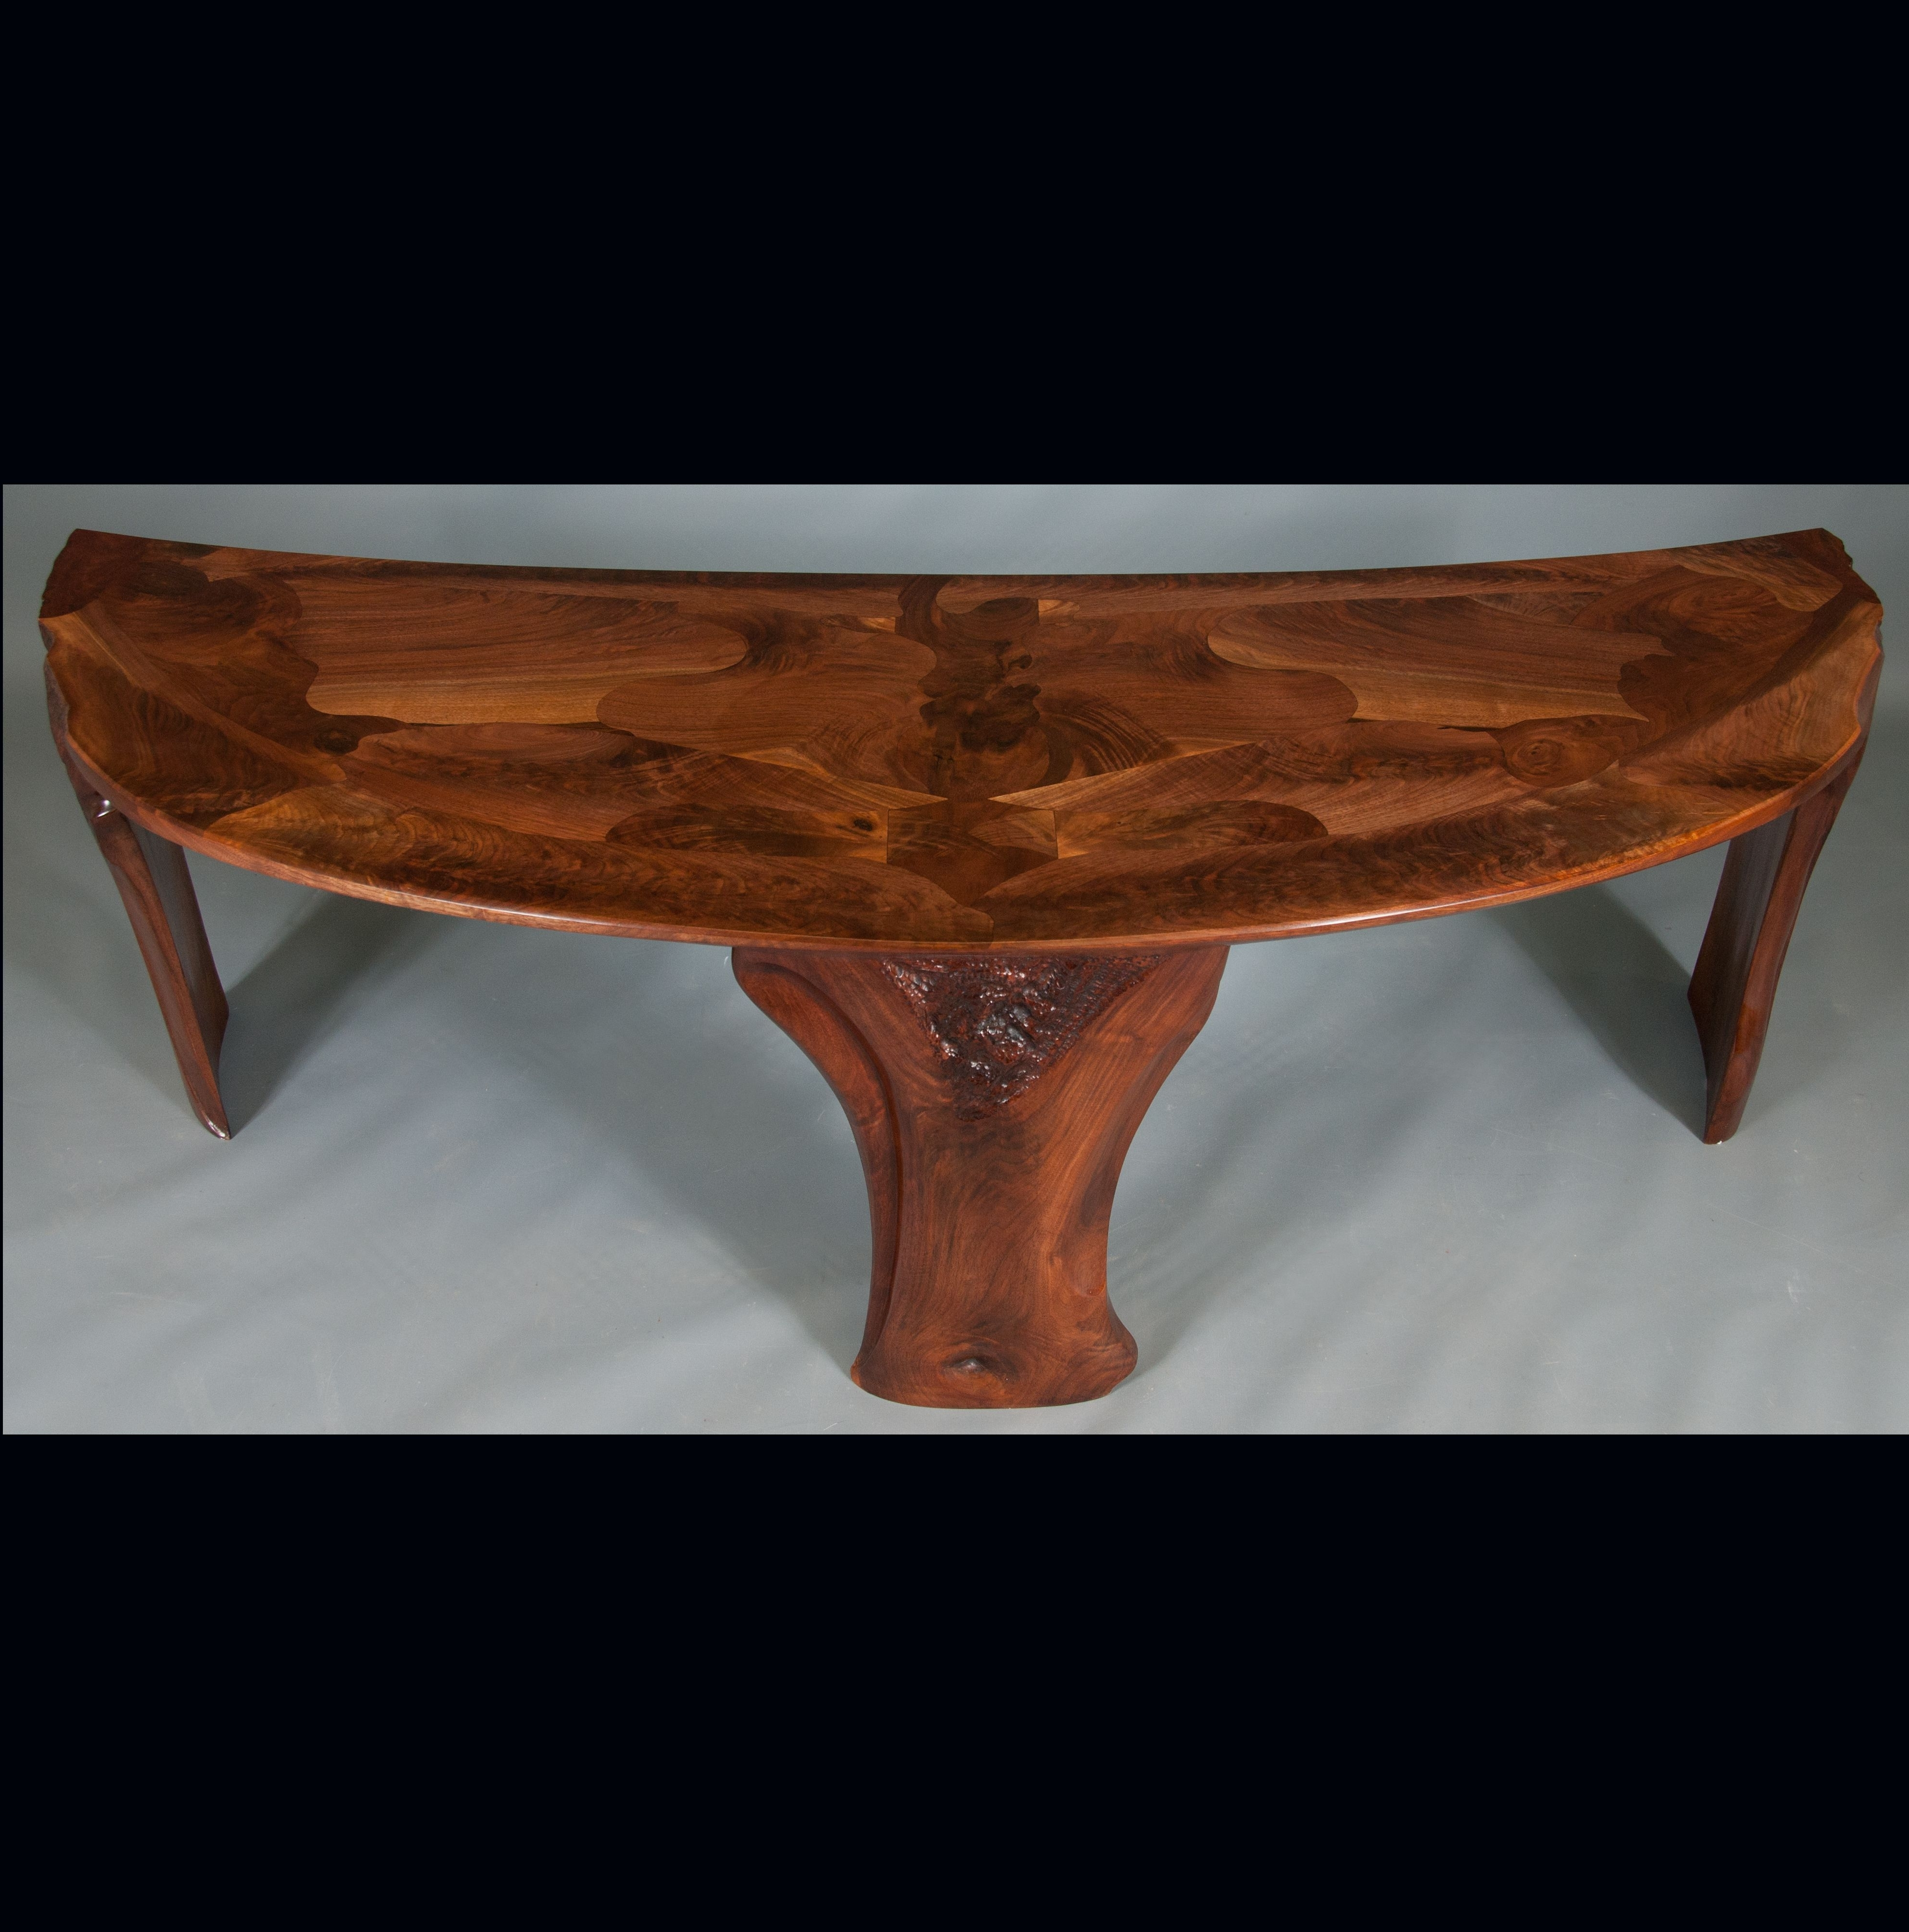 Most Recent Expressionist Coffee Tables In Custom Made Abstract Organic Expressionism In Furniture™ Walnut (View 13 of 20)